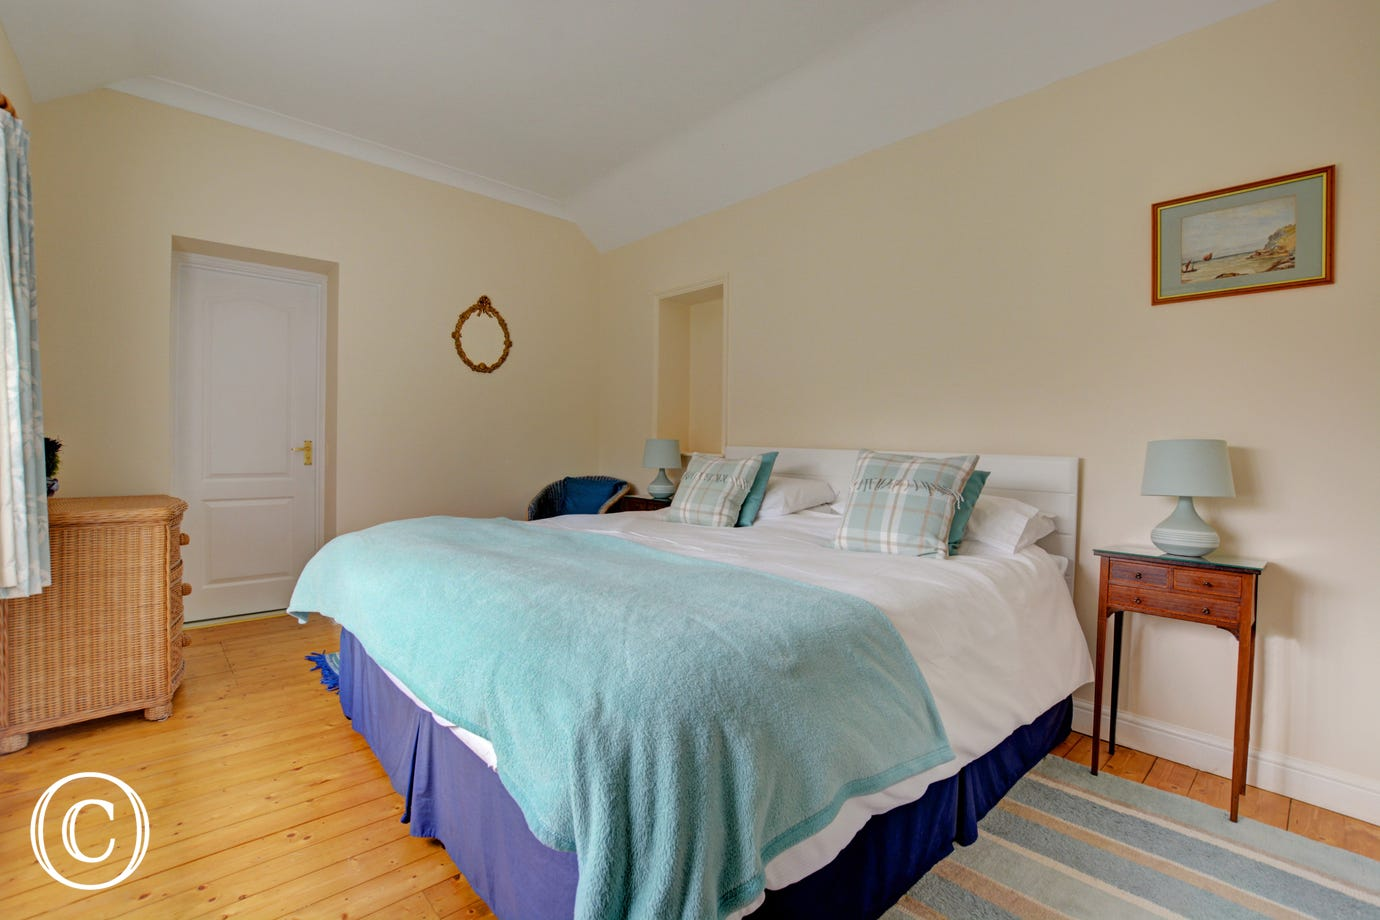 Spacious double bedroom with crisp white bed linen, and pretty pale turqoise throw and cushions.